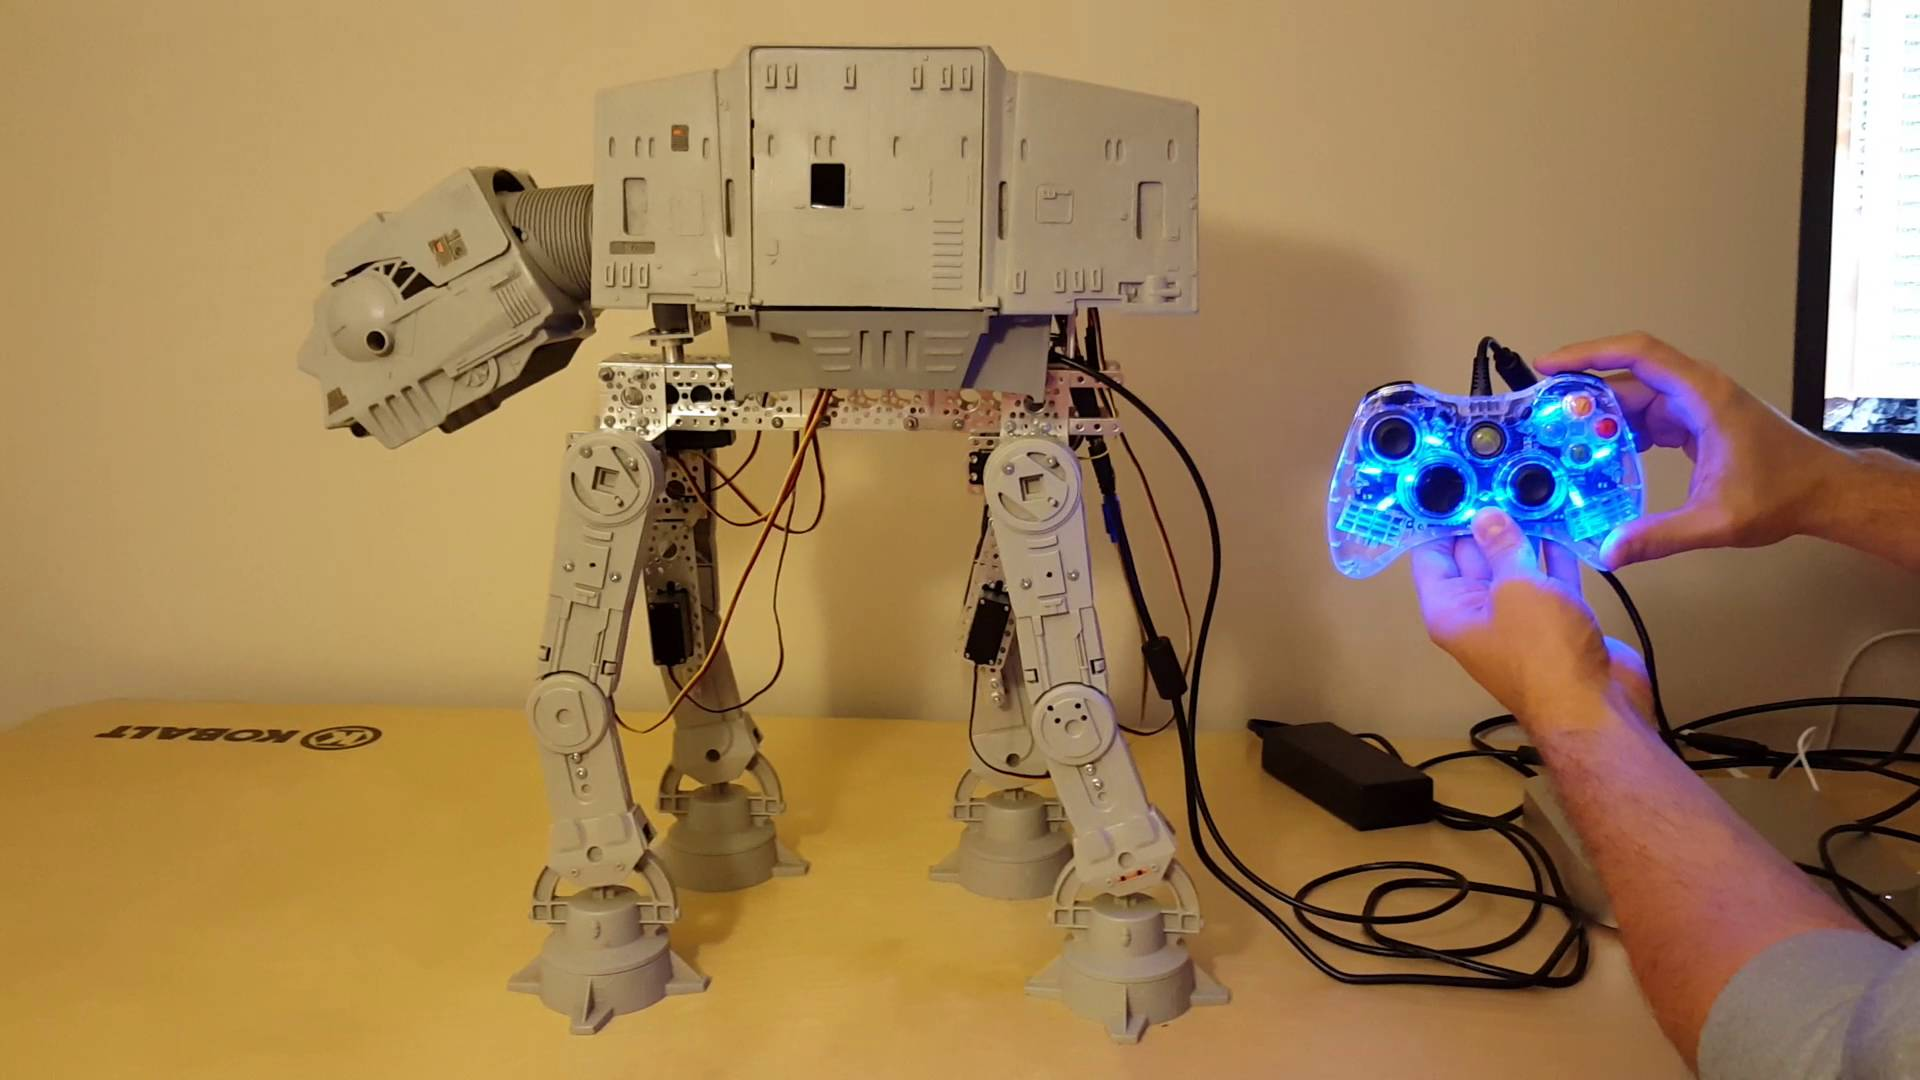 Vintage AT-AT Walker Toy Brought to Life With an Xbox 360 Controller and an Arduino Uno Board